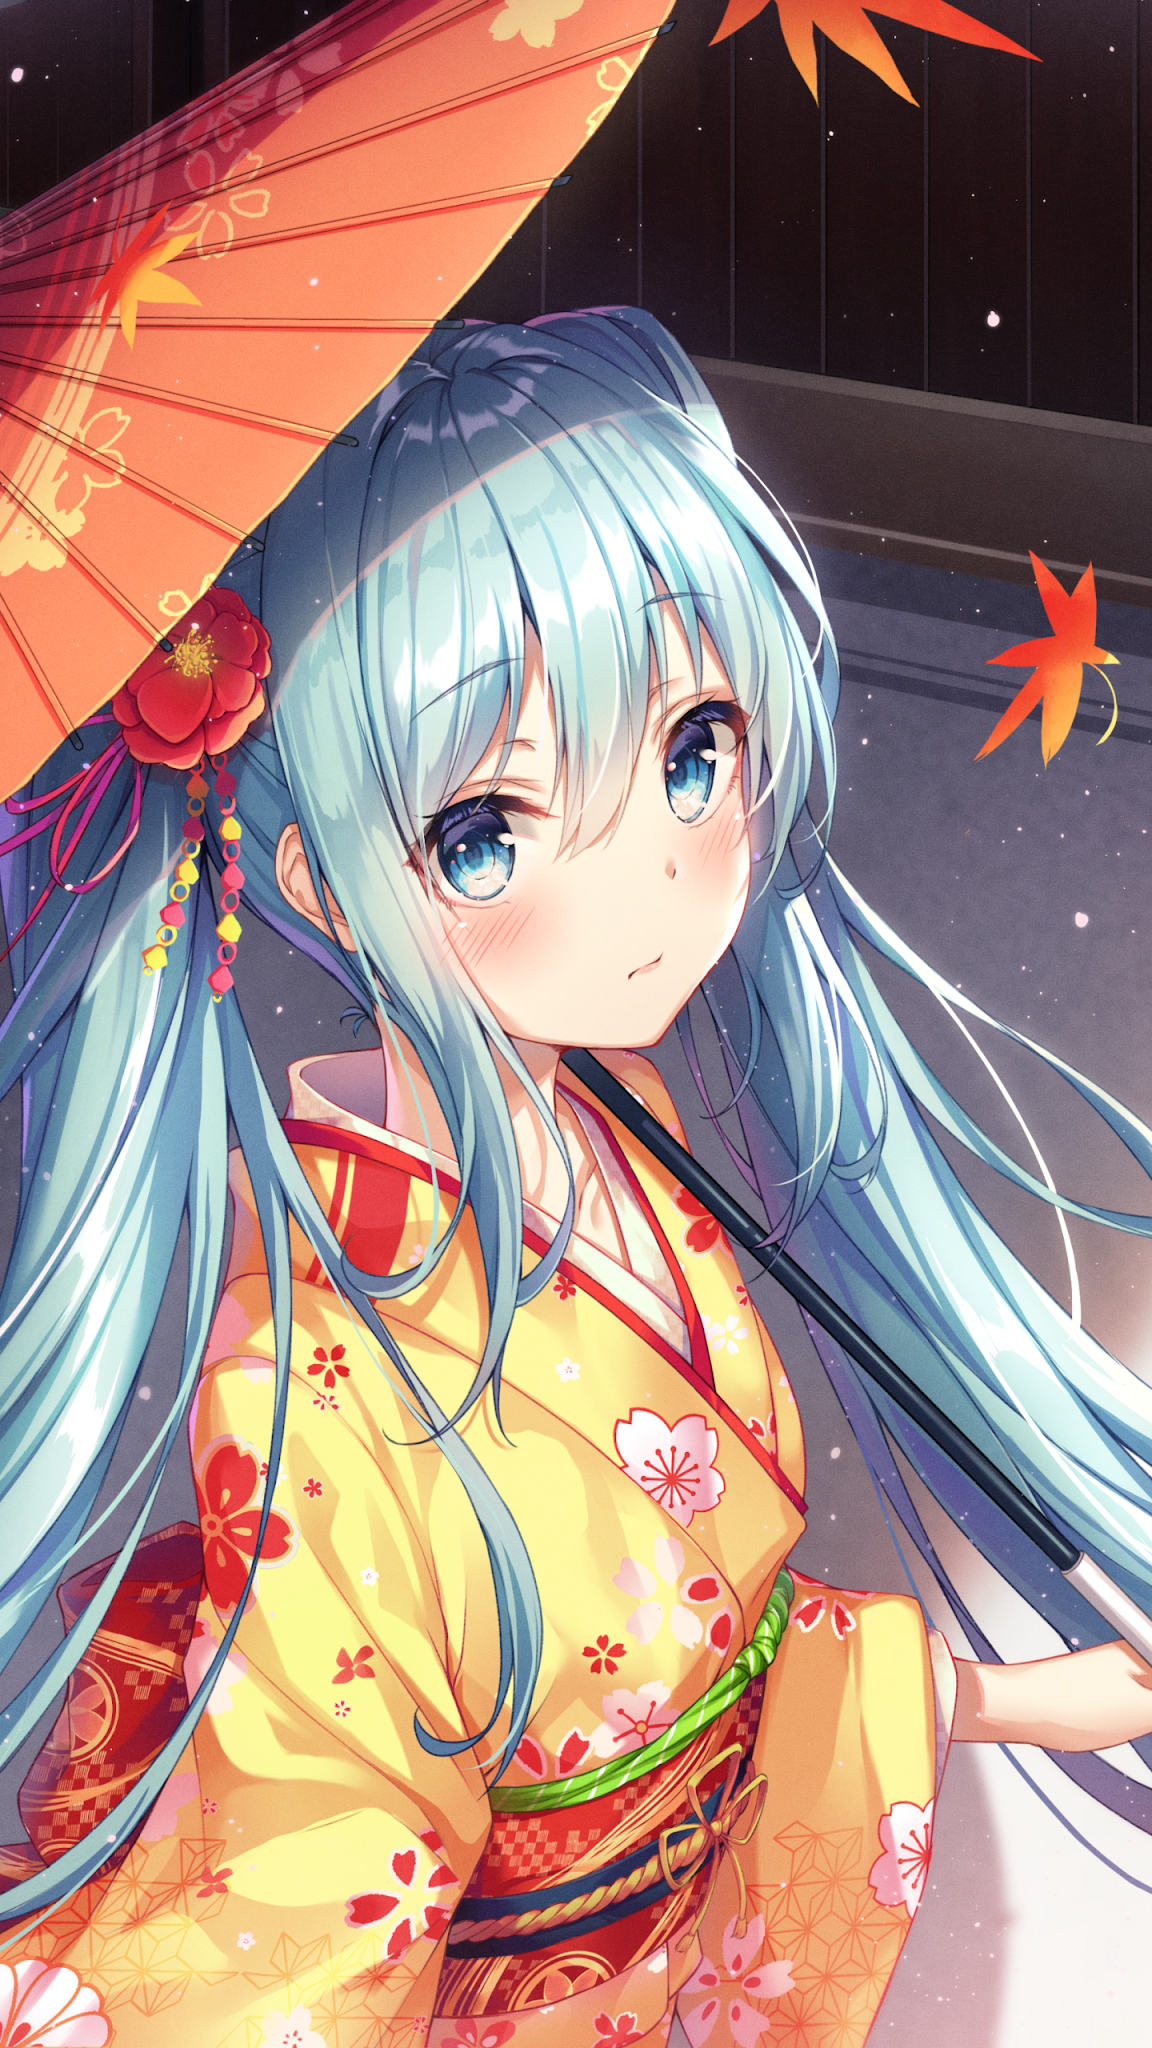 Anime Wallpaper Ipad : anime, wallpaper, Hatsune, Miku,Anime,,mobile, Wallpaper,Vocaloid, Anime, Wallpaper, Iphone,, Wallpapers,